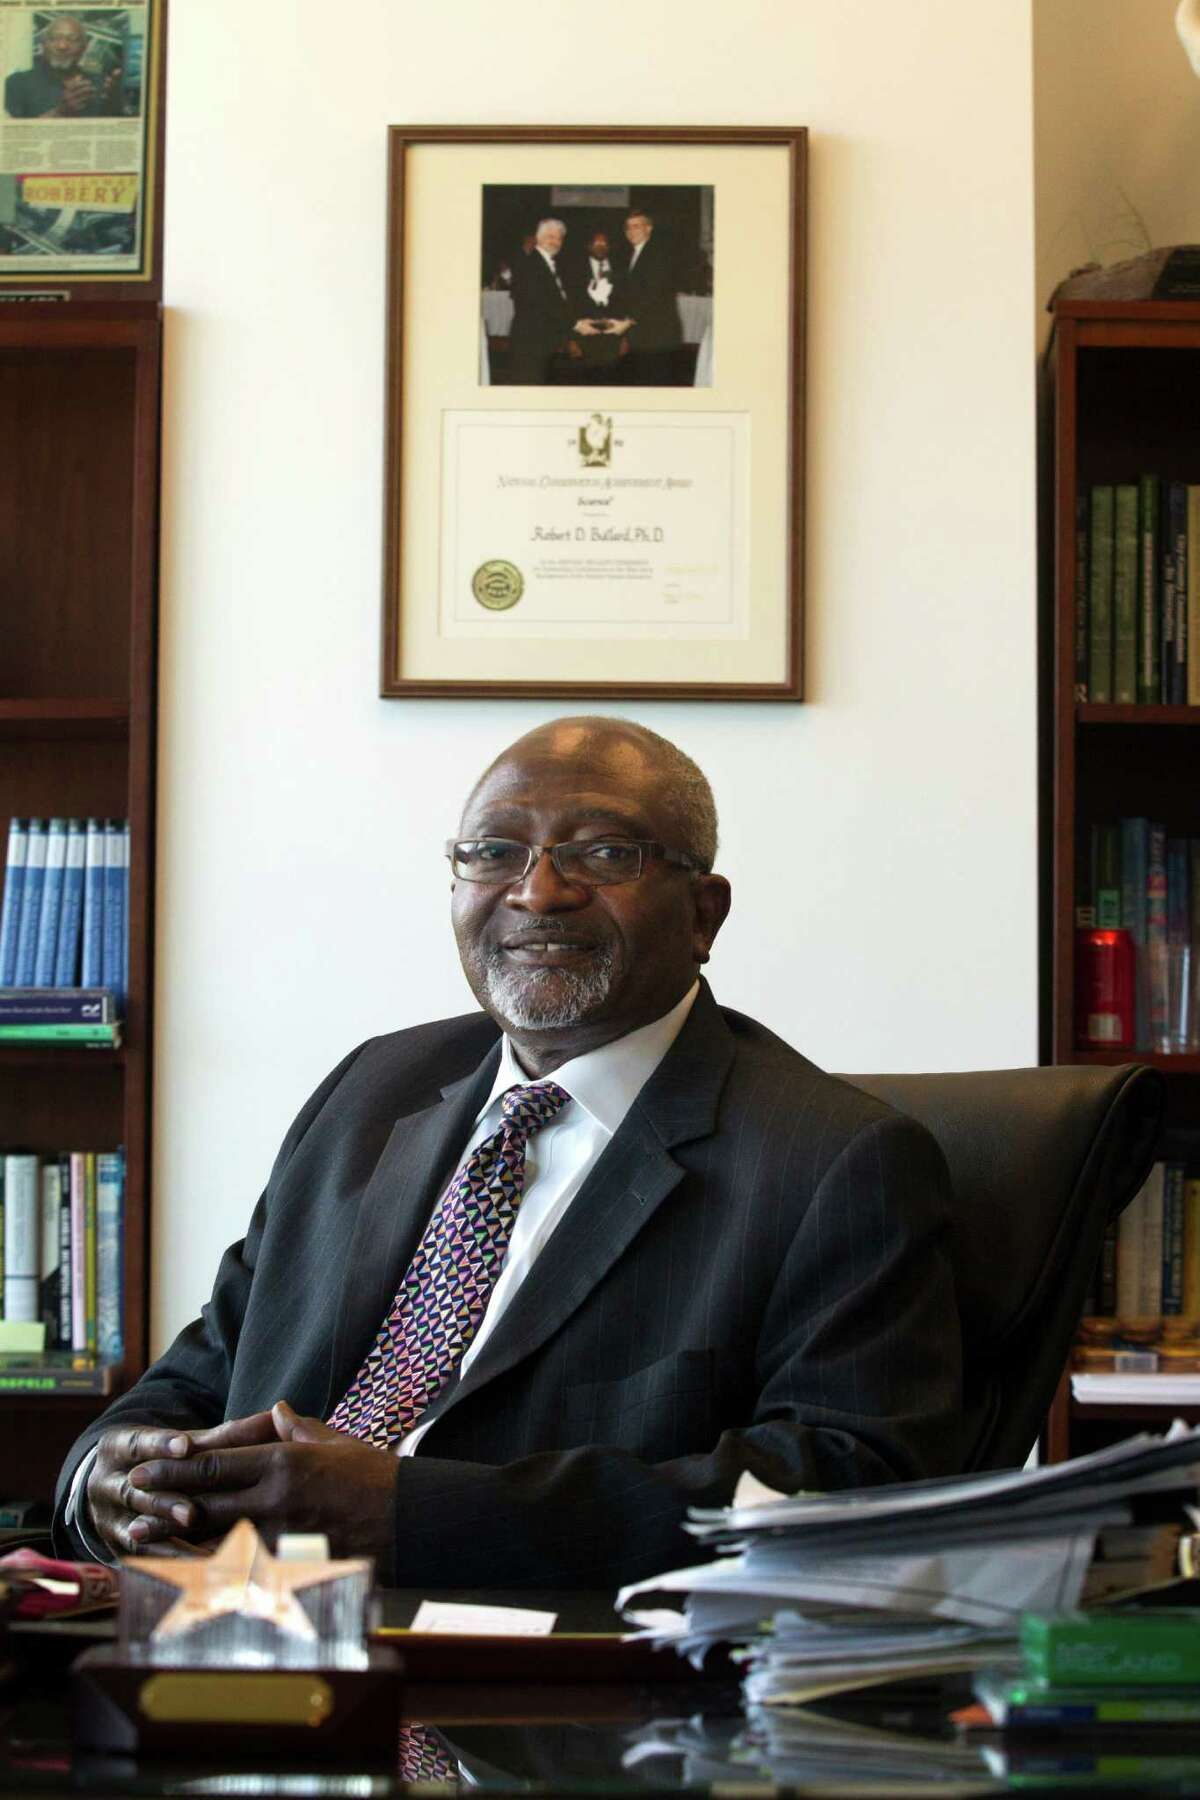 Dean of the Barbara Jordan-Mickey Leland School of Public Affairs at Texas Southern University Dr. Robert D. Bullard poses for a portrait in his office on Tuesday, Oct. 1, 2013, in Houston. ( J. Patric Schneider / For the Chronicle )